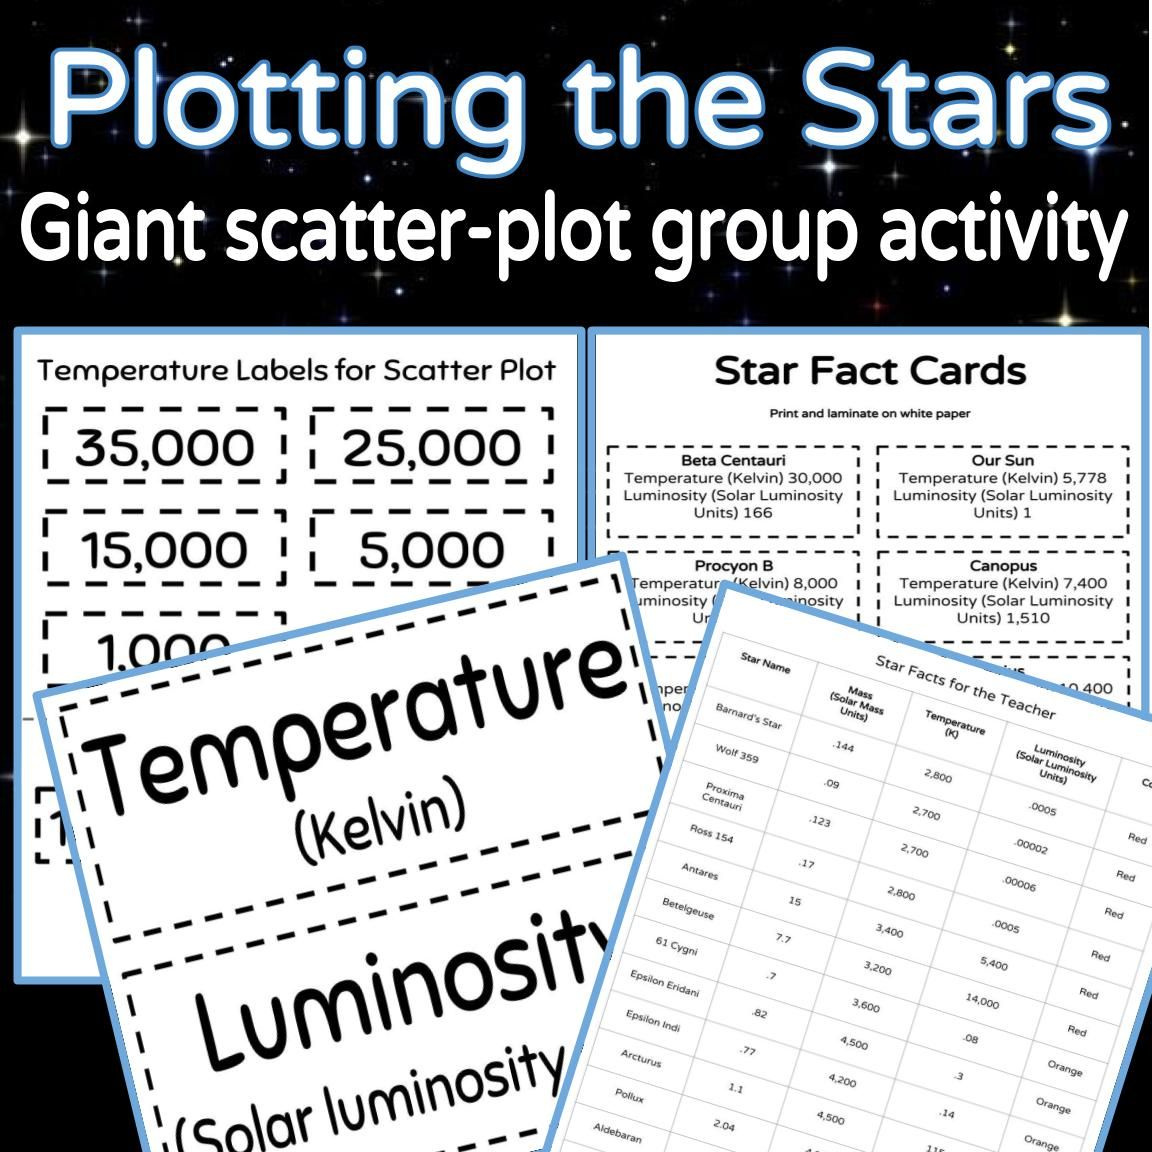 Giant Scatter Plot Activity Life Cycle of a Star (HSESS1